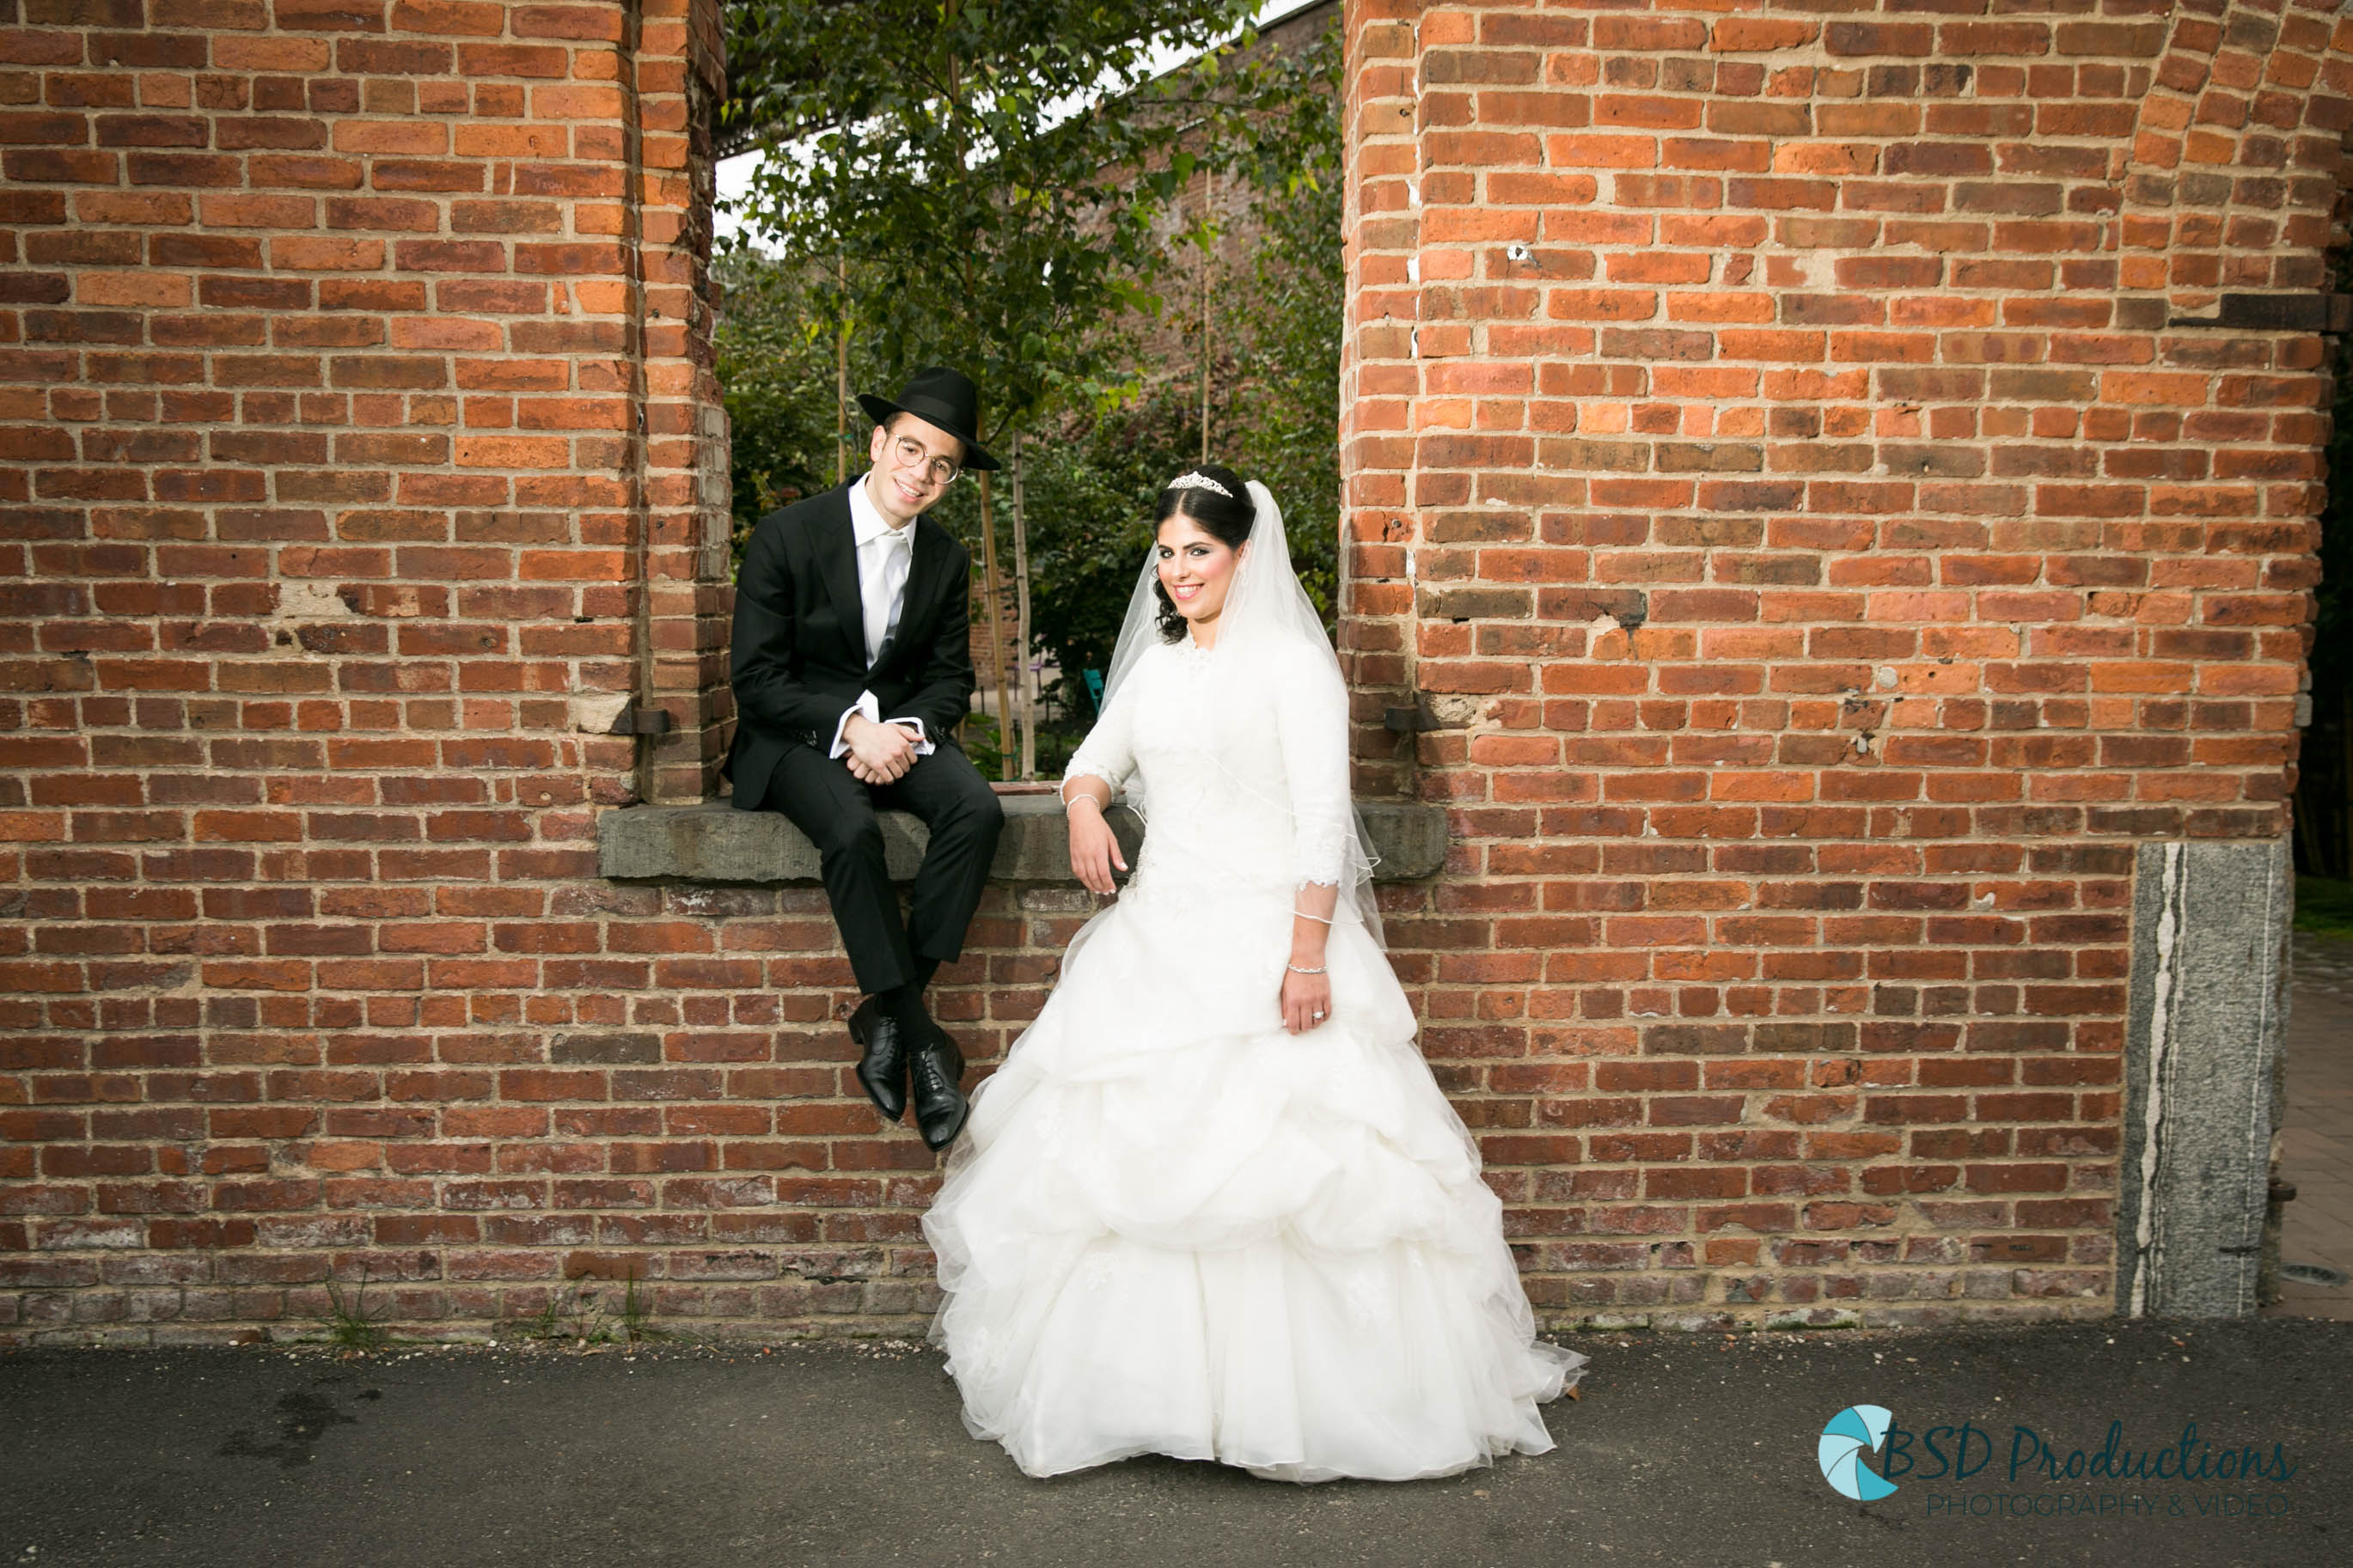 UH5A0227 Wedding – BSD Productions Photography